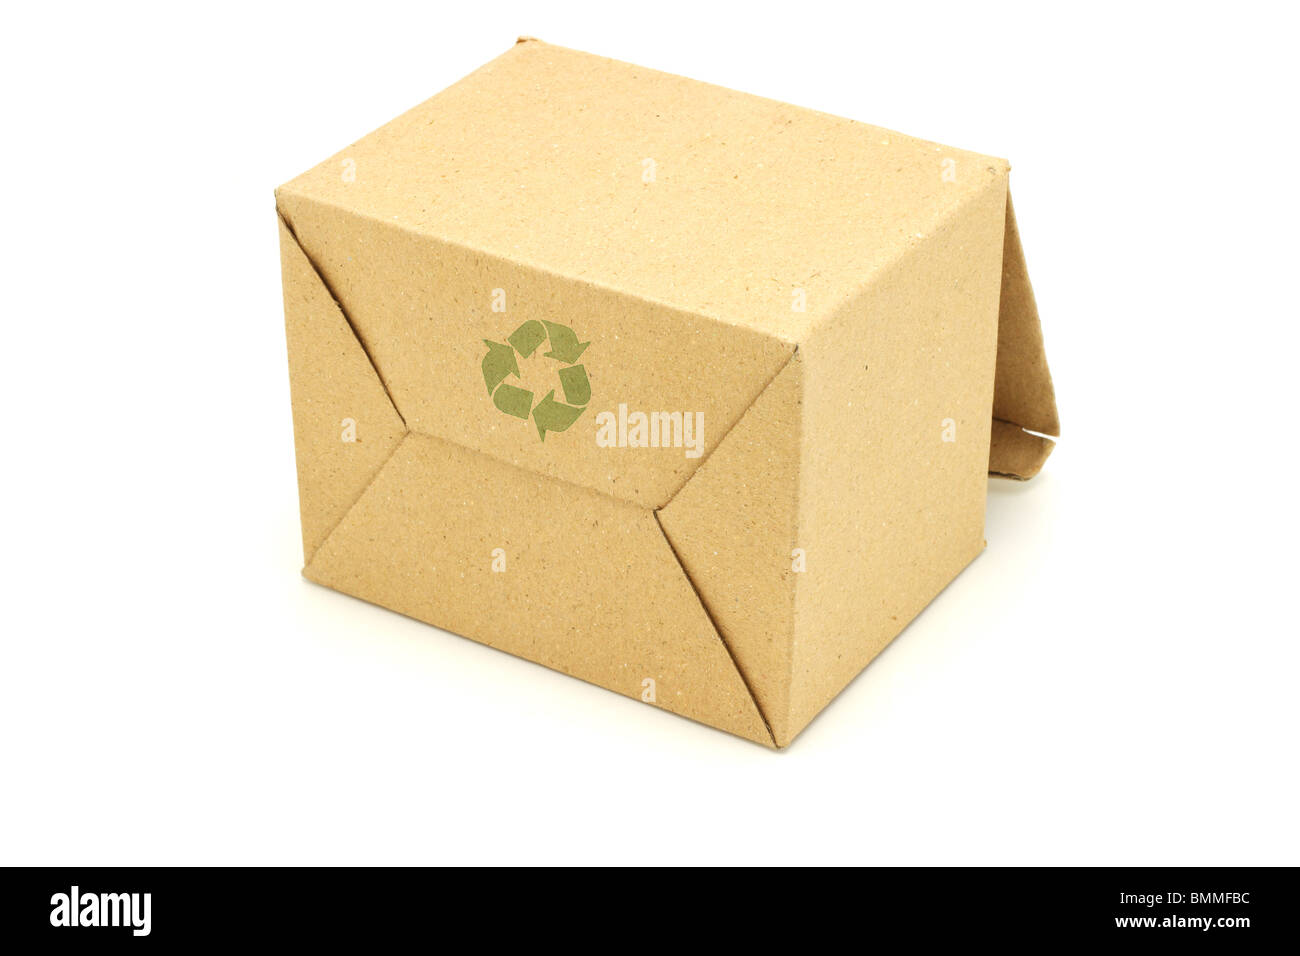 Recycle symbol printed on underside of empty carton box - Stock Image